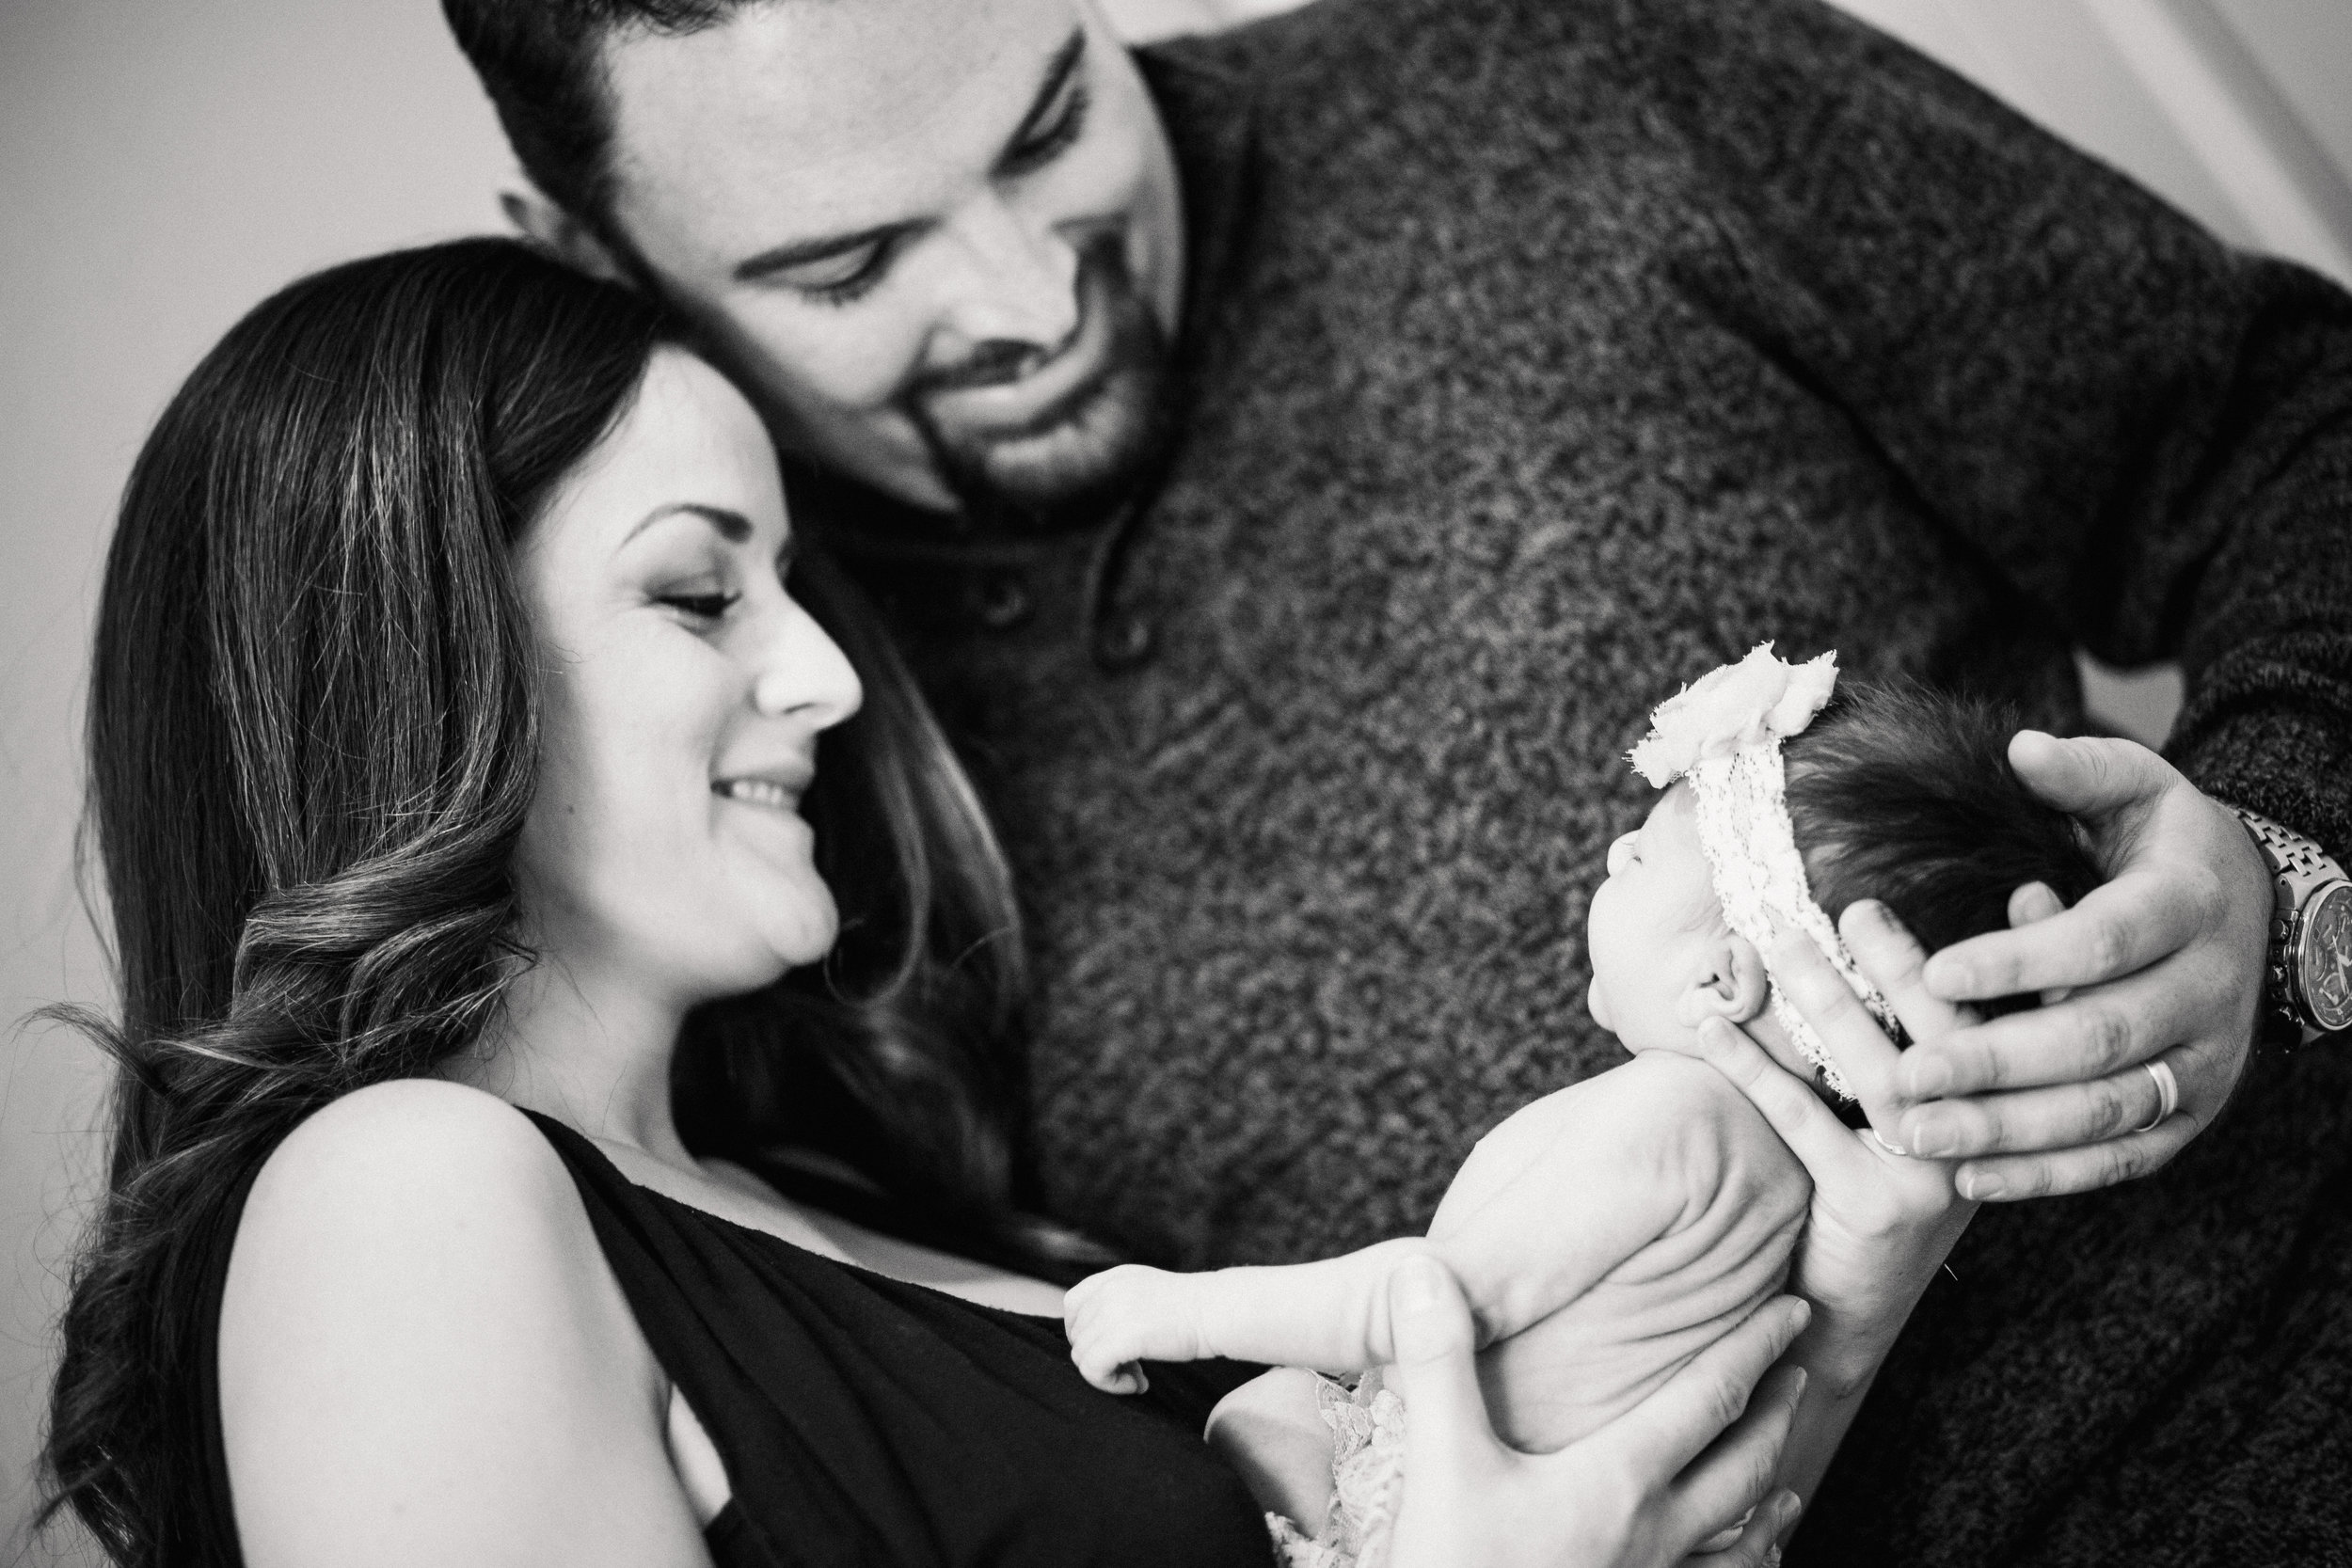 ALacey_Michelle_Photography_LR-9203.jpg